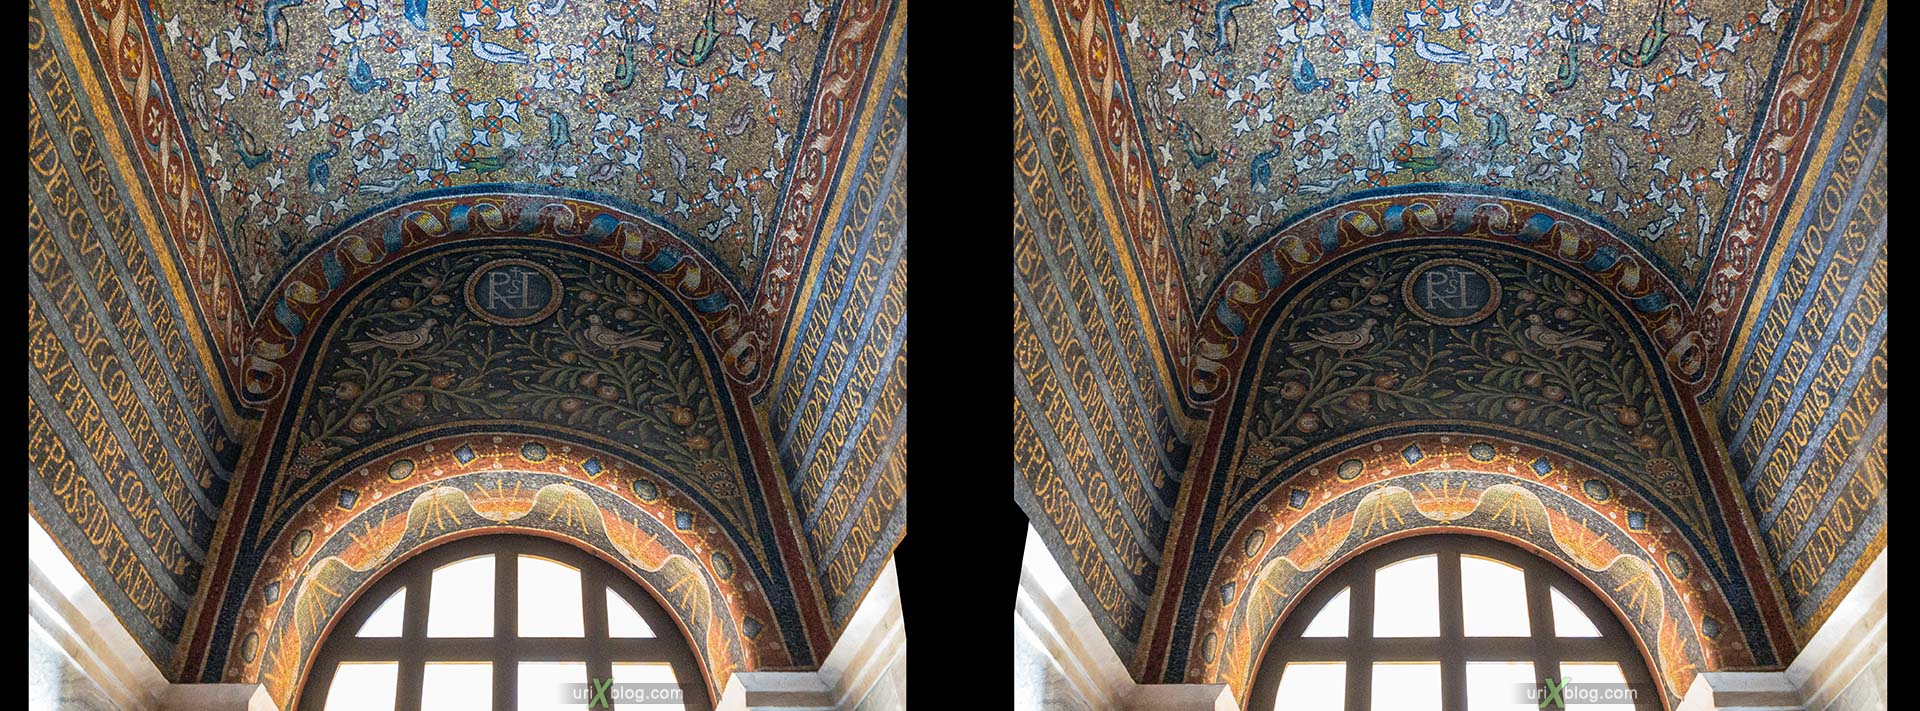 Archiepiscopal Chapel, mosaic, Ravenna, Italy, 3D, stereo pair, cross-eyed, crossview, cross view stereo pair, stereoscopic